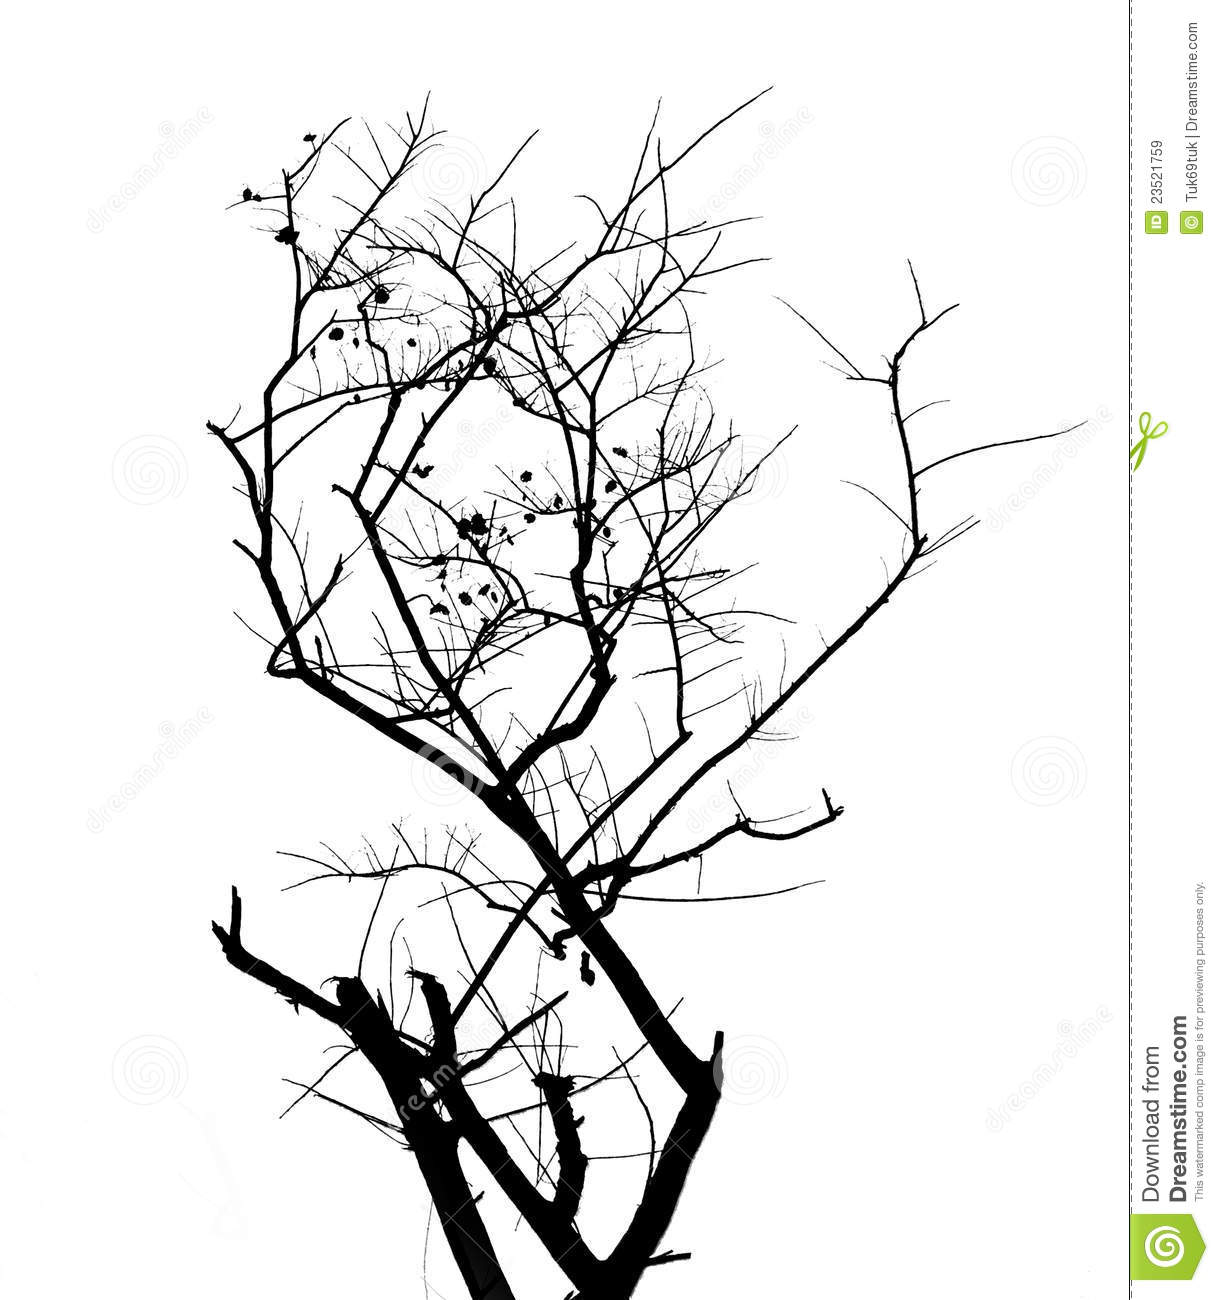 Branches amp Silhouette Vector Images over 25000